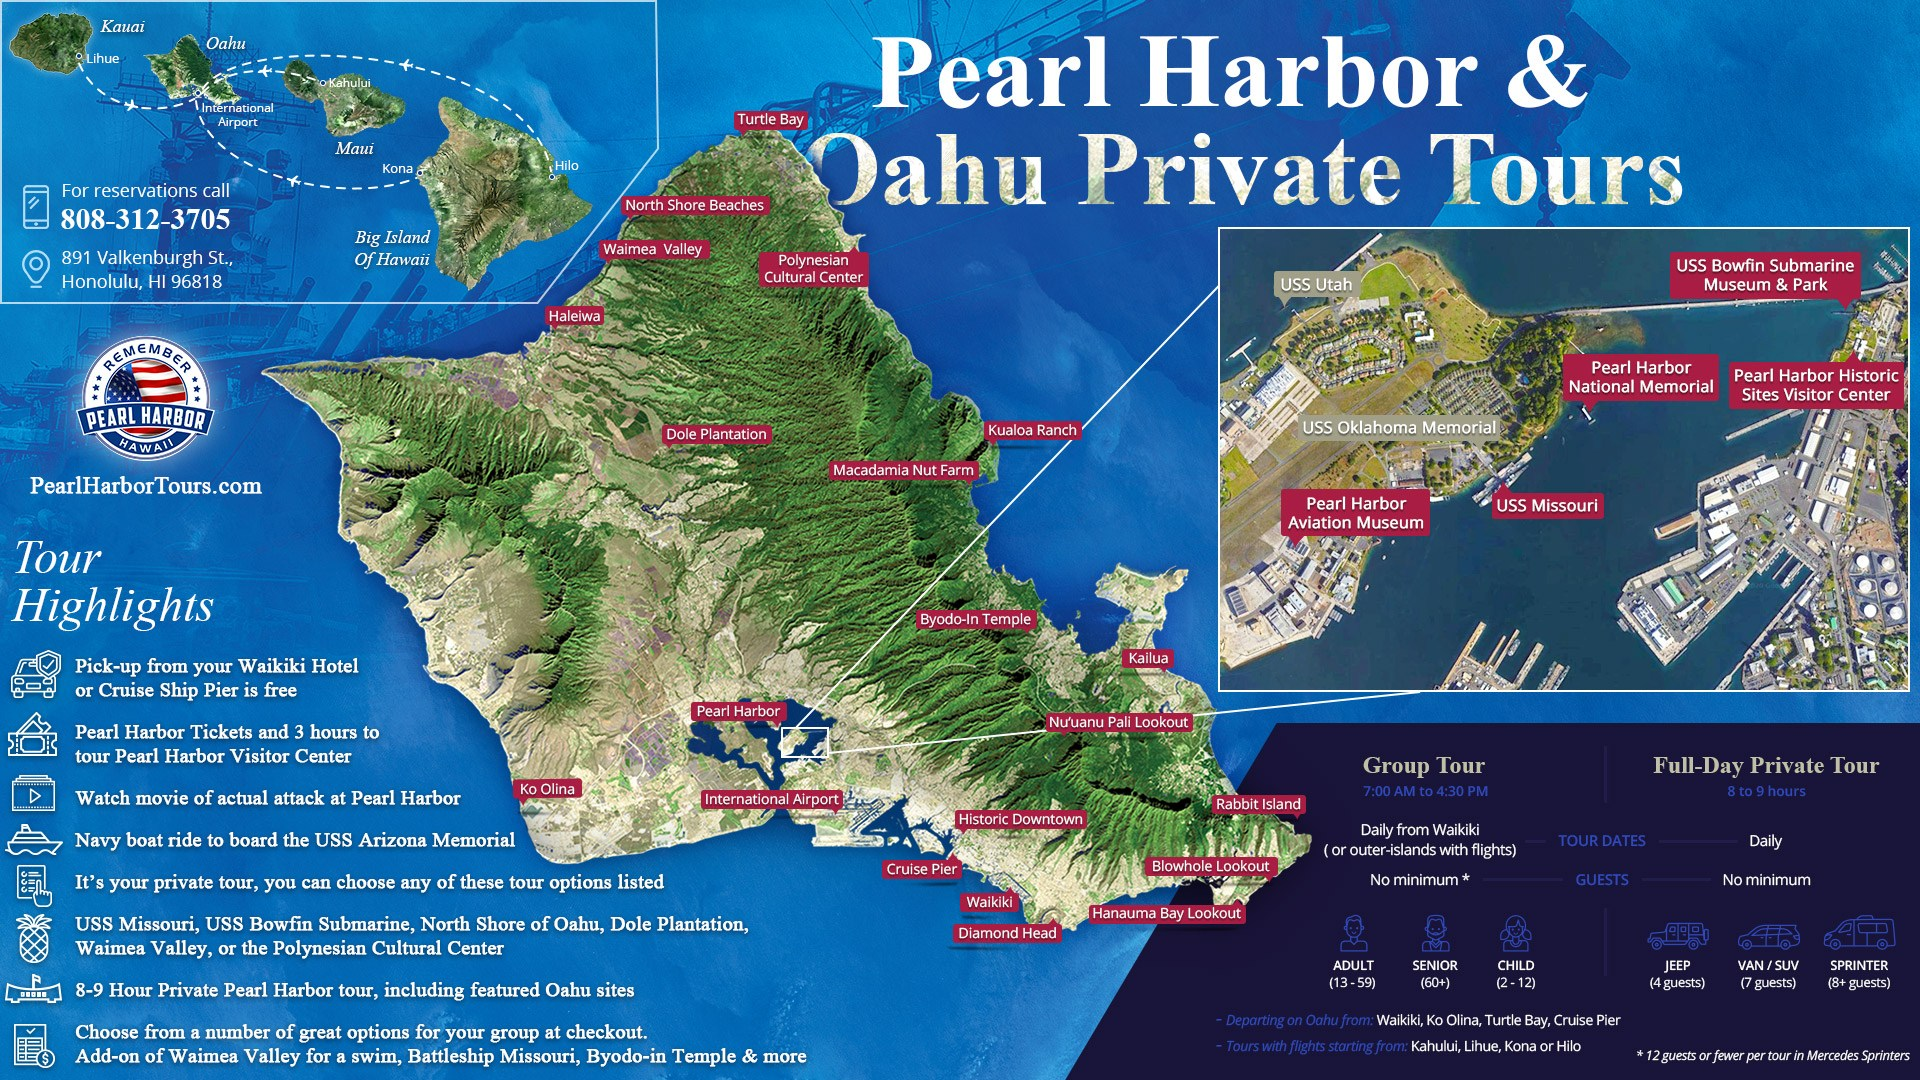 Pearl Harbor & Oahu Private Tours Map